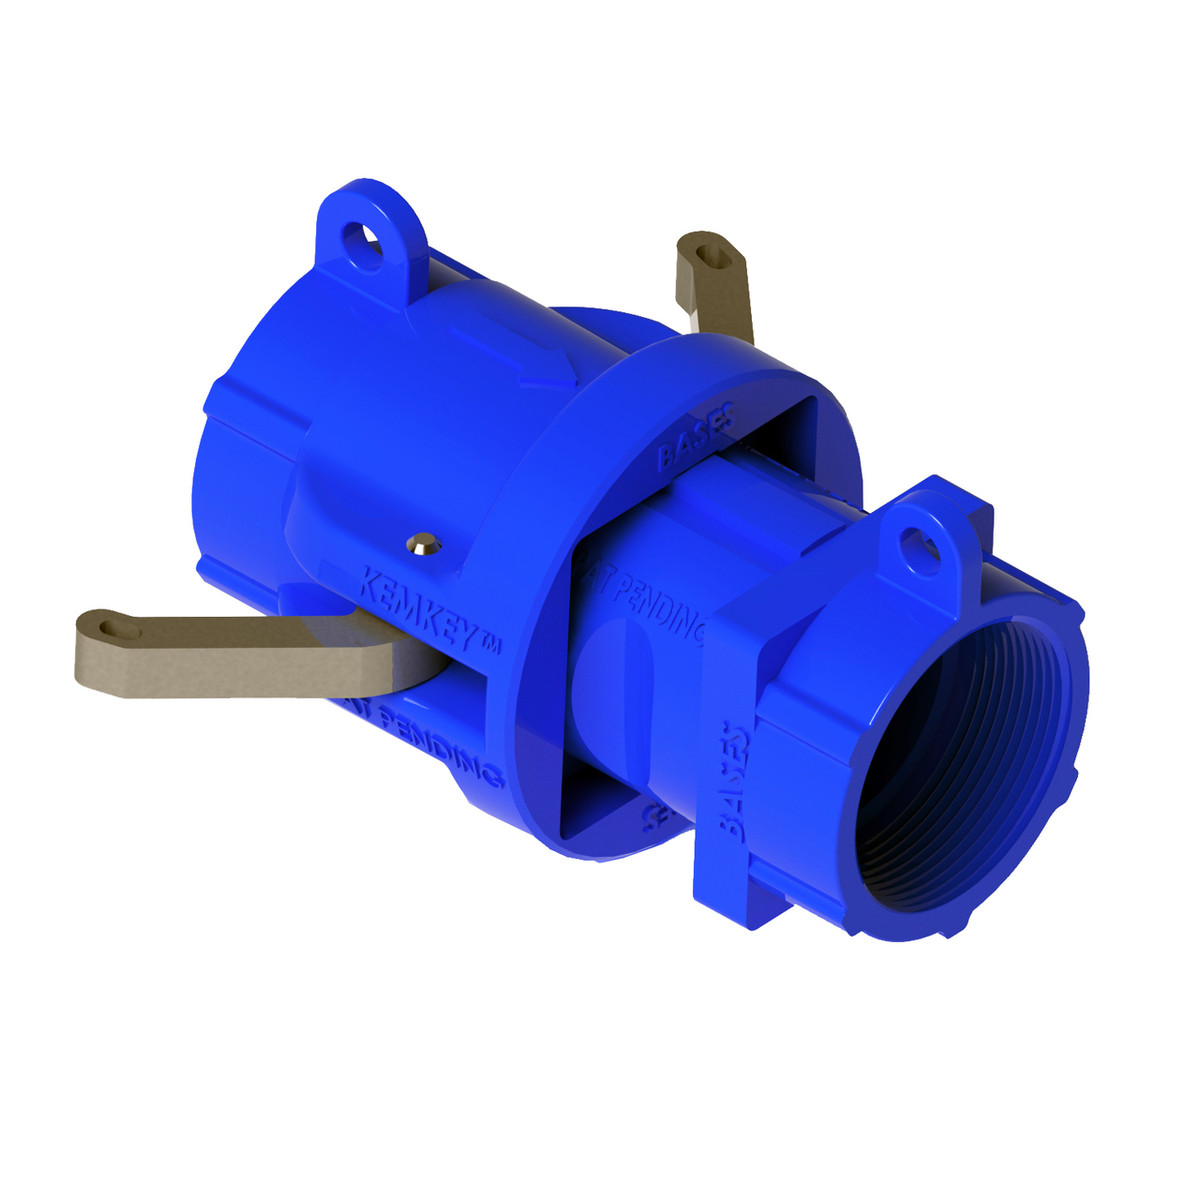 VXB Brand Japan MJC-40CSK-GR 1//2 inch to 25mm Jaw-Type Flexible Coupling Coupling Bore 2 Diameter:25mm Coupling Length 66 Coupling Outer Diameter:40